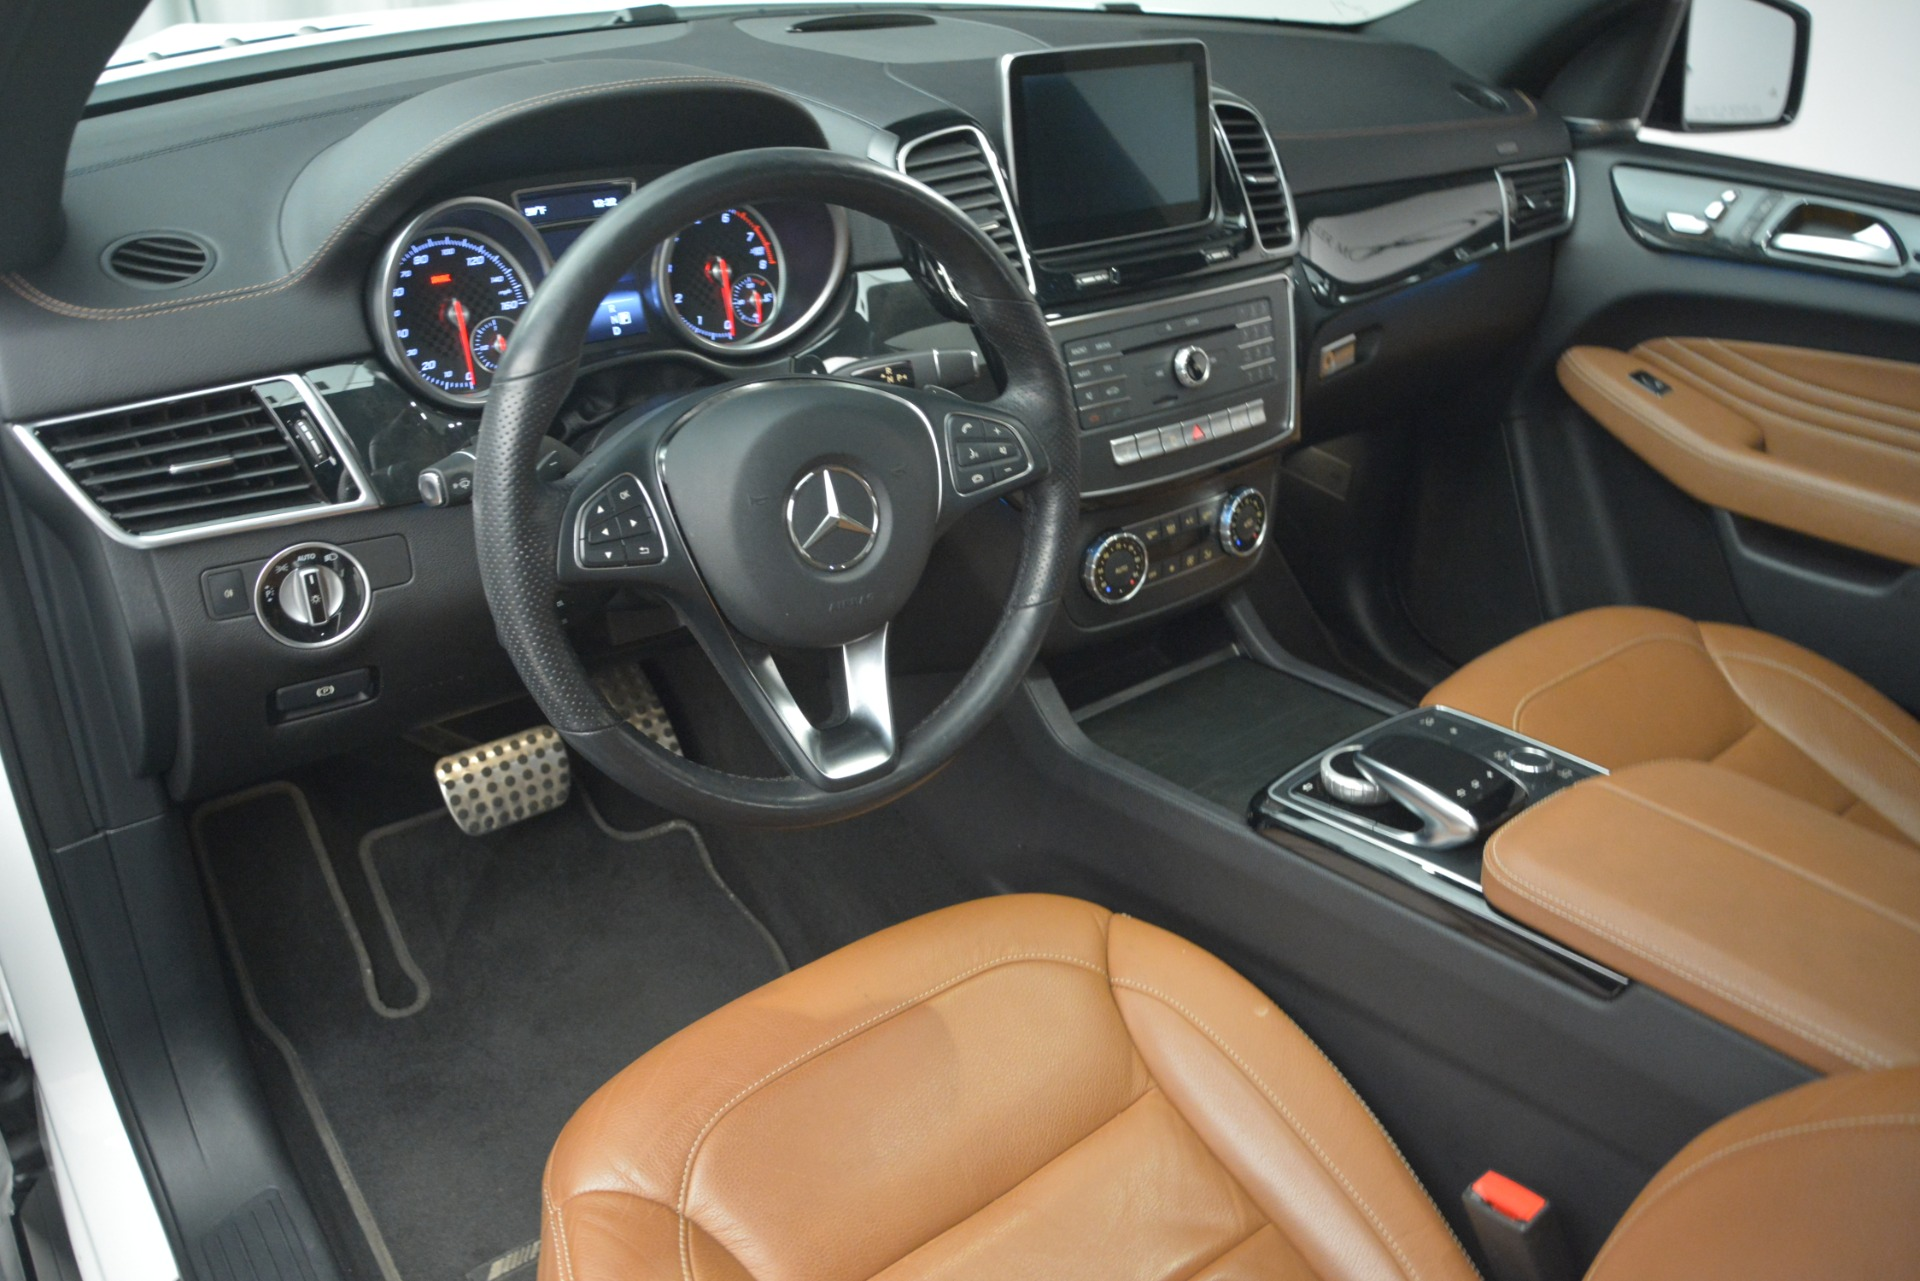 Used 2016 Mercedes-Benz GLE 450 AMG Coupe 4MATIC For Sale In Westport, CT 2787_p13